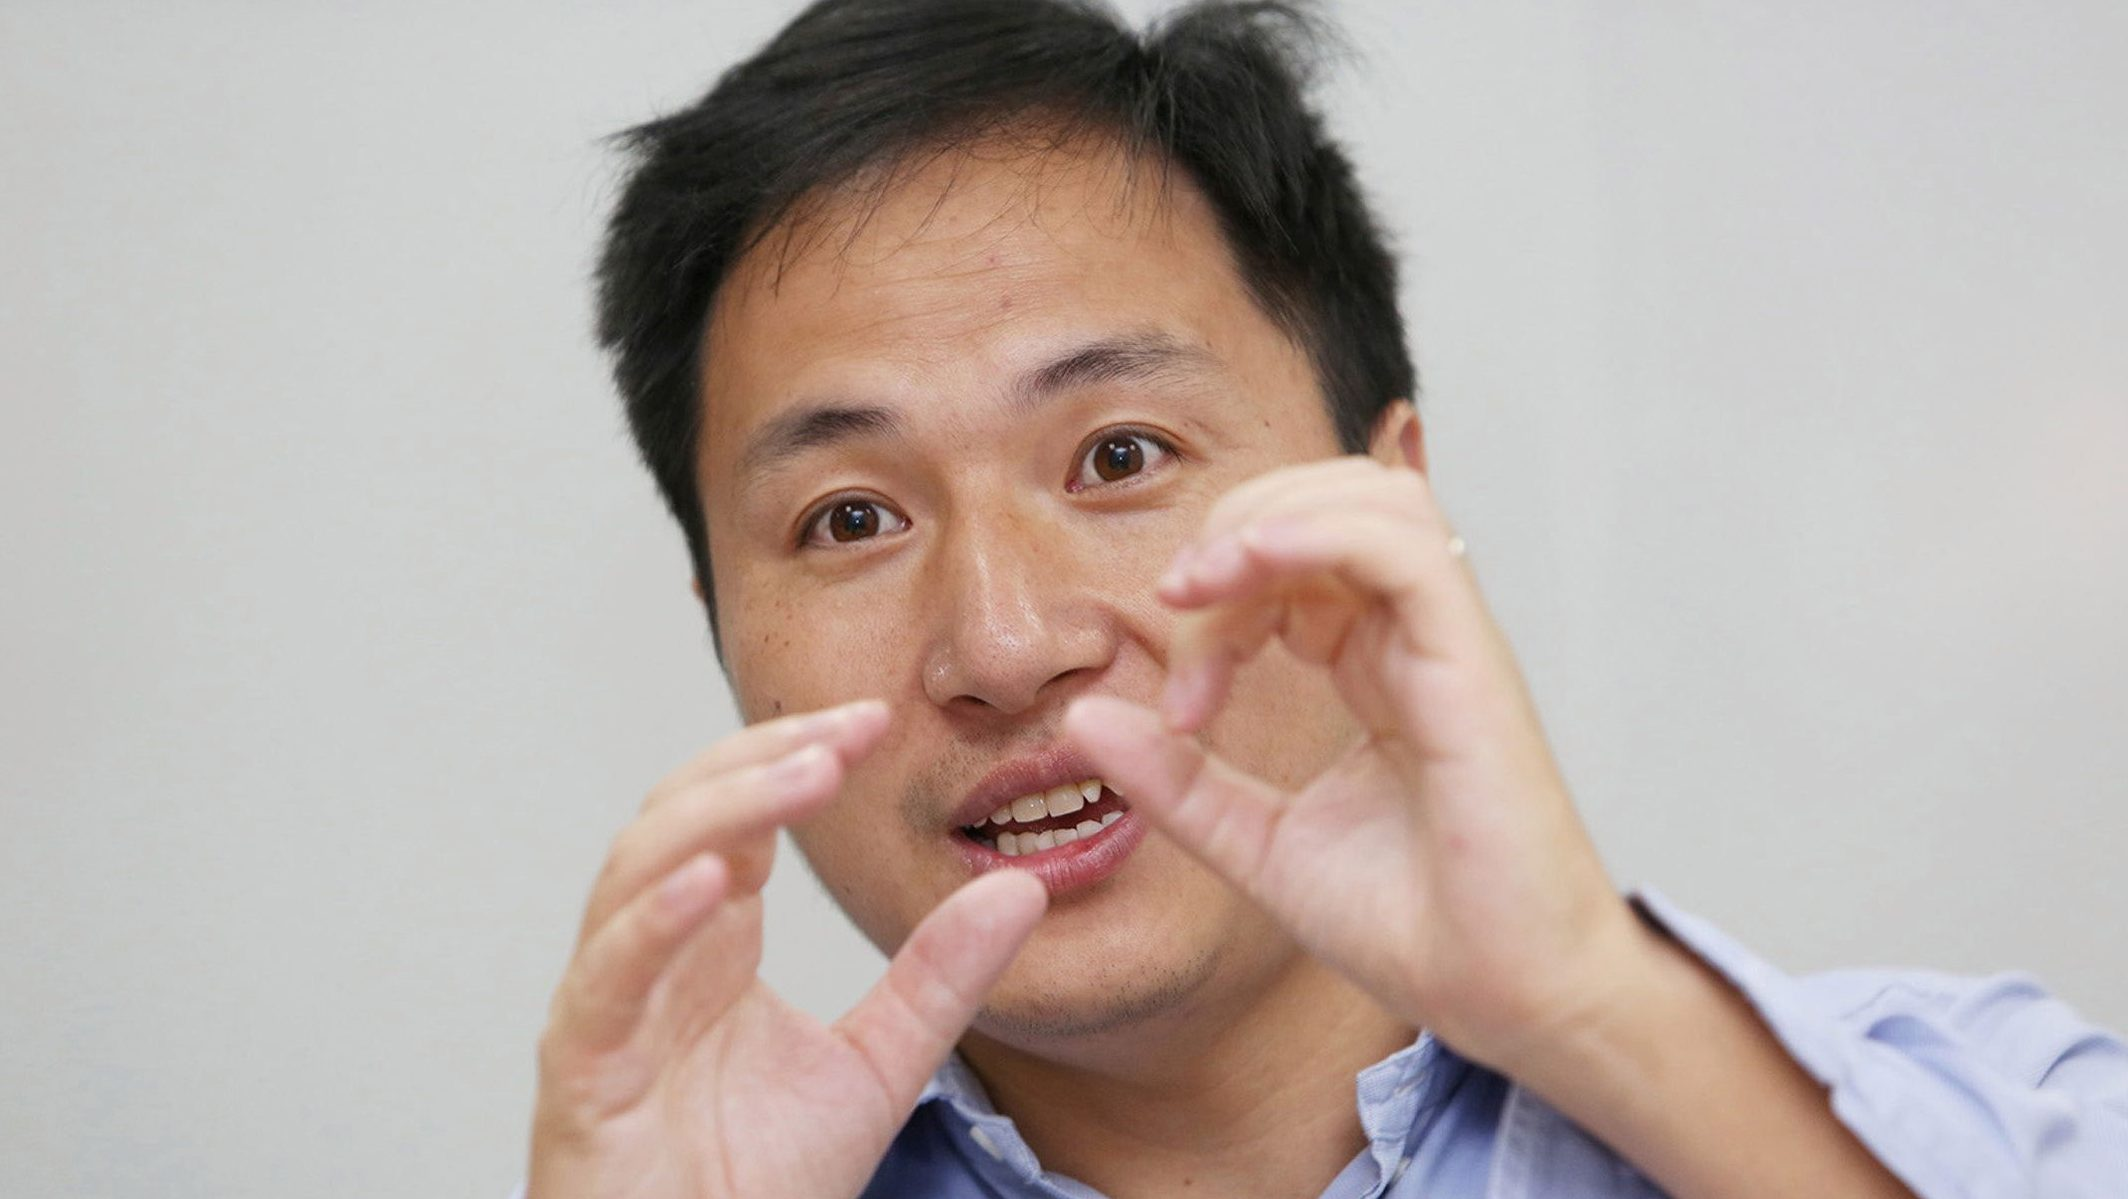 Scientist He Jiankui speaks at his company Direct Genomics in Shenzhen, Guangdong province, China July 18, 2017. Picture taken July 18, 2017. REUTERS/Stringer ATTENTION EDITORS - THIS IMAGE WAS PROVIDED BY A THIRD PARTY. CHINA OUT. - RC1F93F0D840